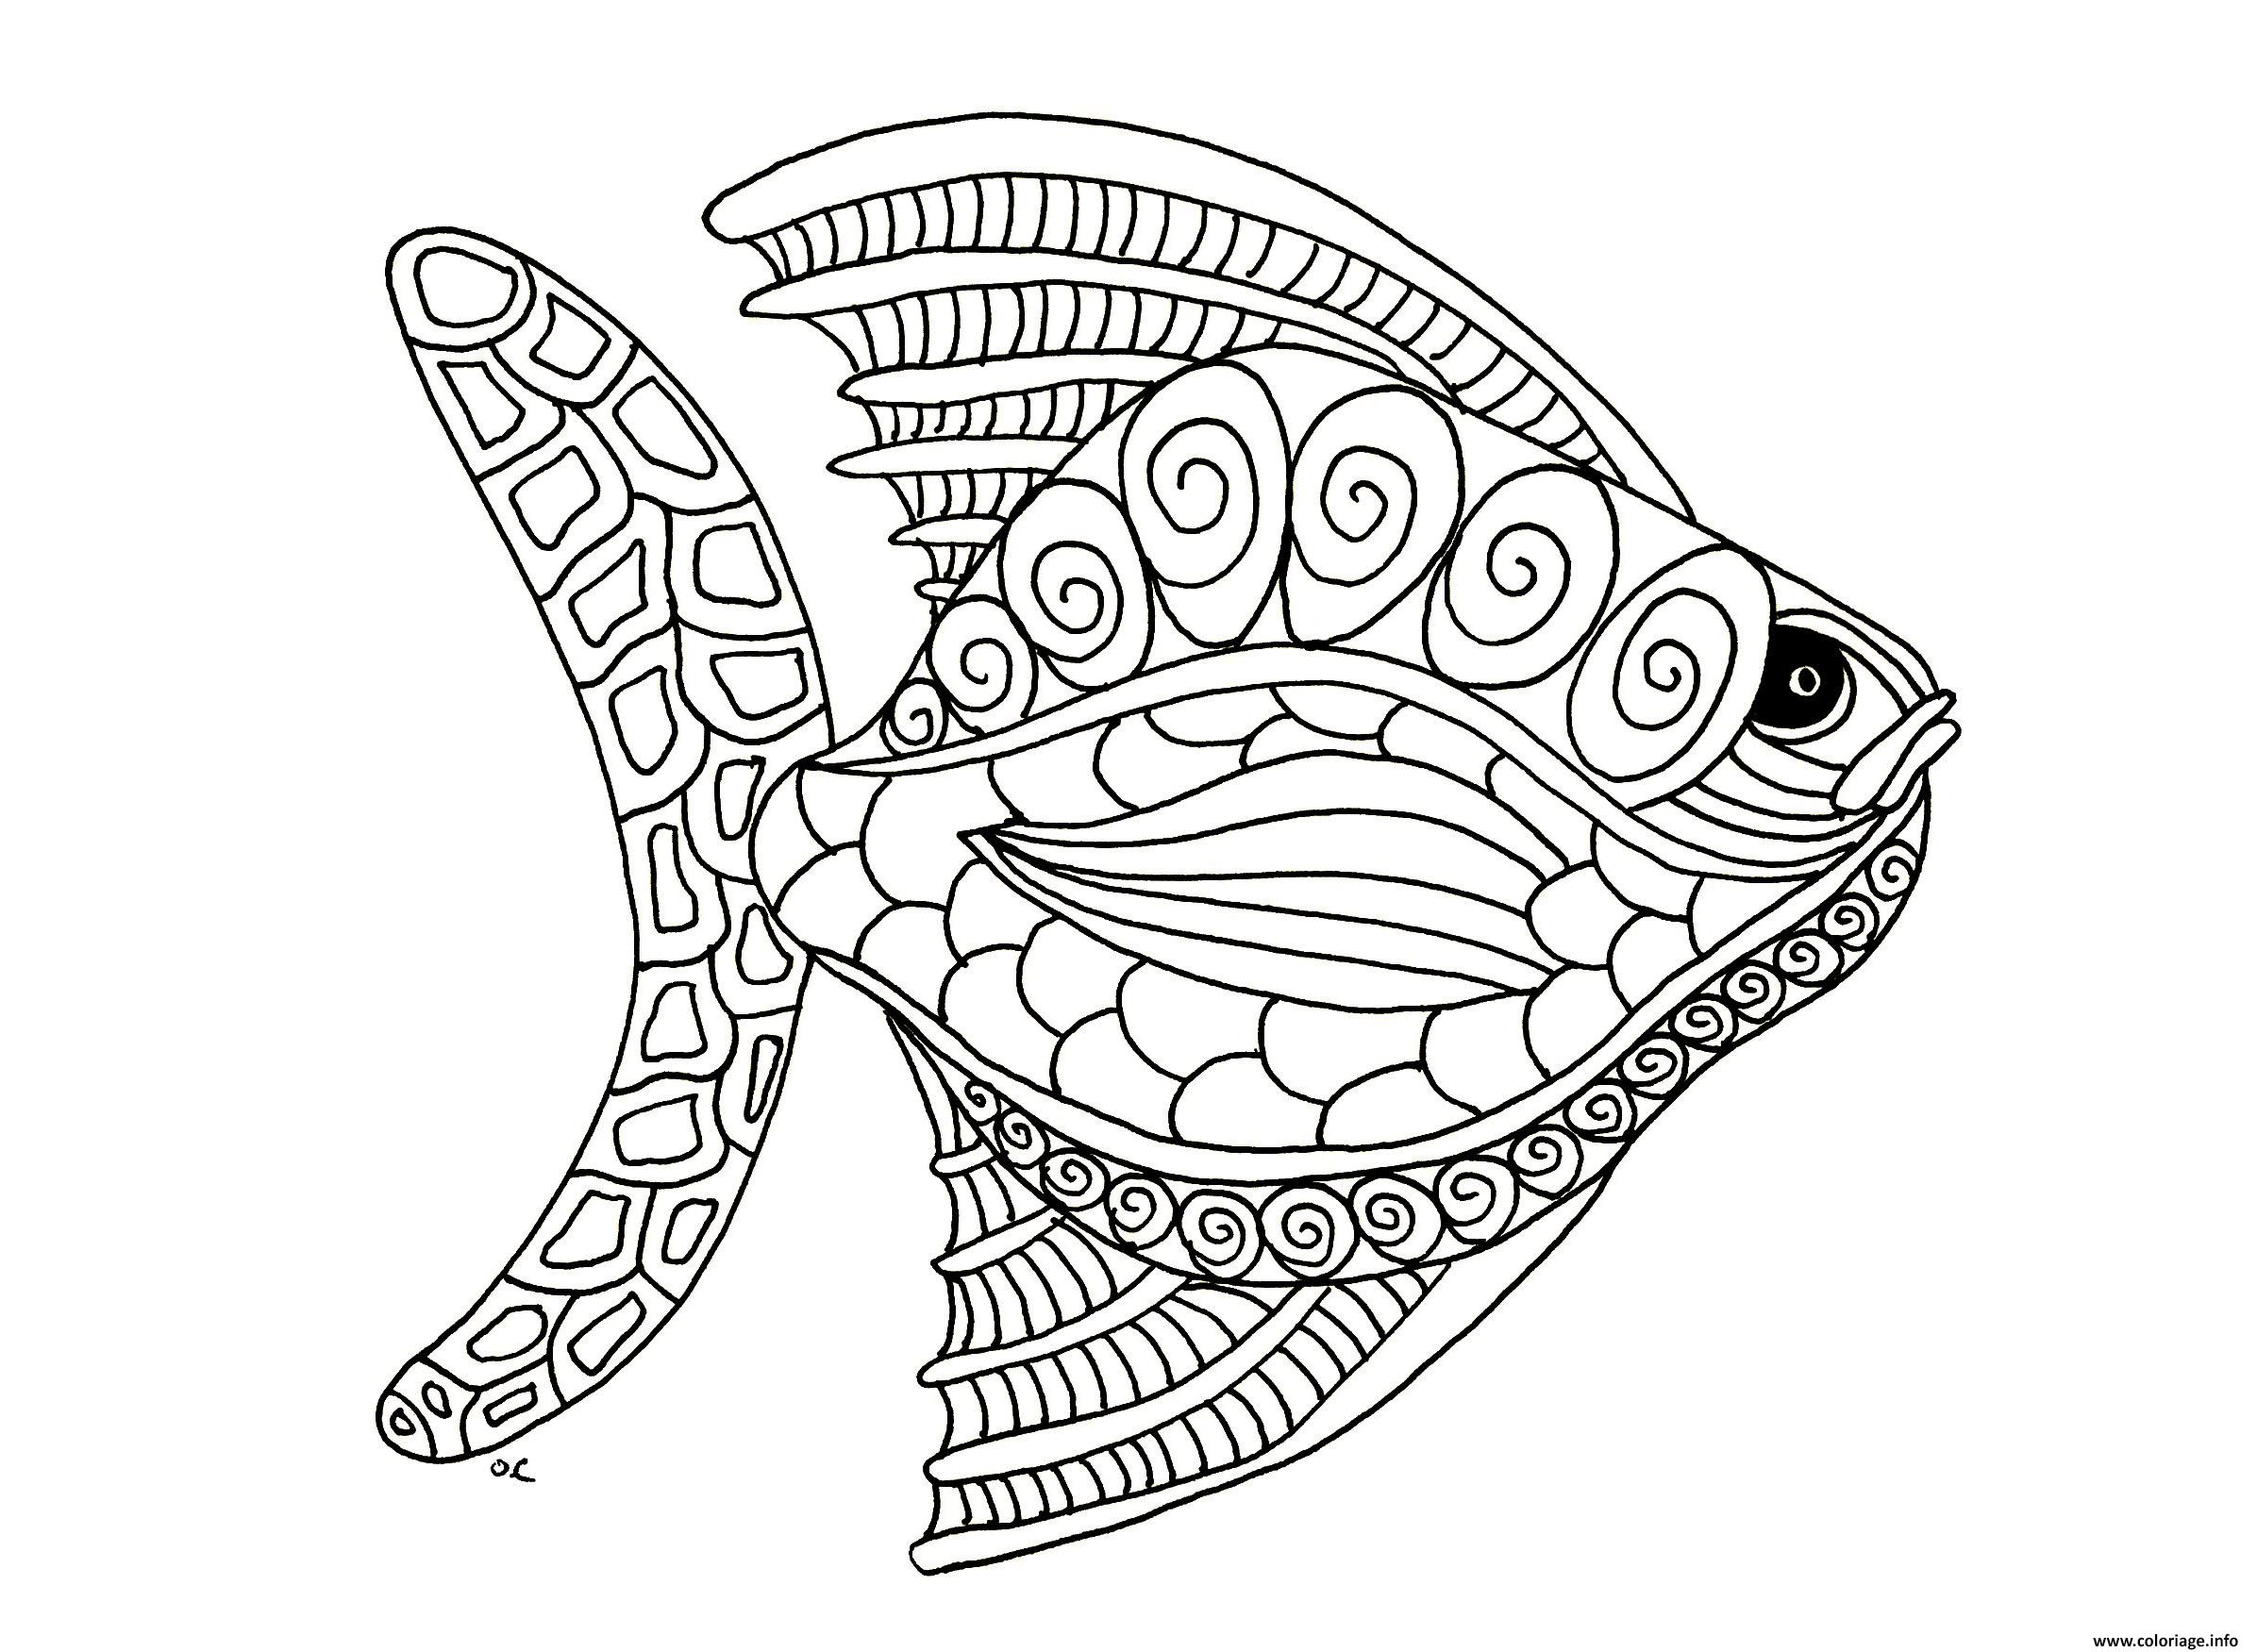 Coloriage Mandala De Poisson.Coloriage Poisson Avril Adulte Mandala Zentangle Dessin